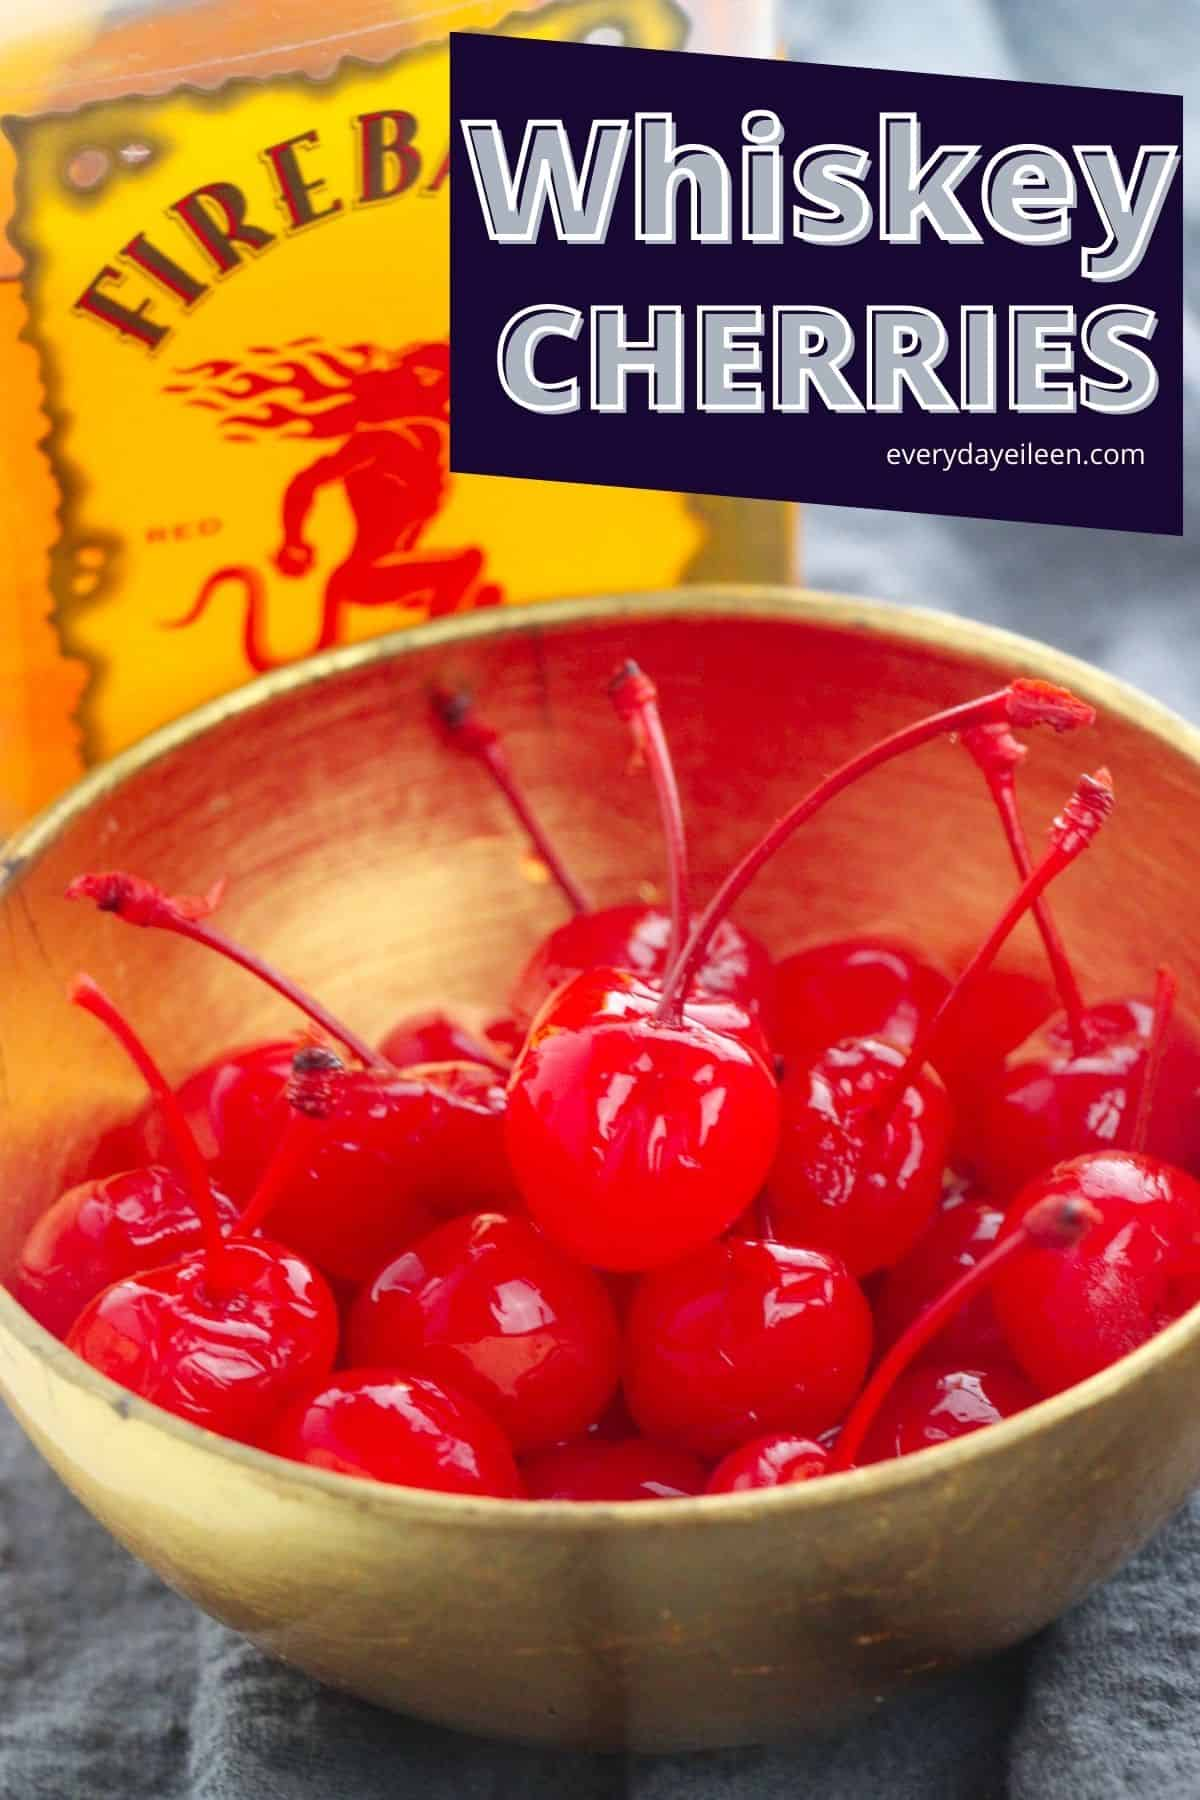 Whiskey infused cherries are the perfect treat for any time of year. Maraschino cherries are soaked in Cinnamon Whiskey to make a decadent treat. Perfect on top of desserts, hot chocolate, Irish coffee, in cocktails. Great as a hostess or Holiday gift. #whiskeycherries #fireballcherries #hostessgifts #everydayeileen via @everydayeileen